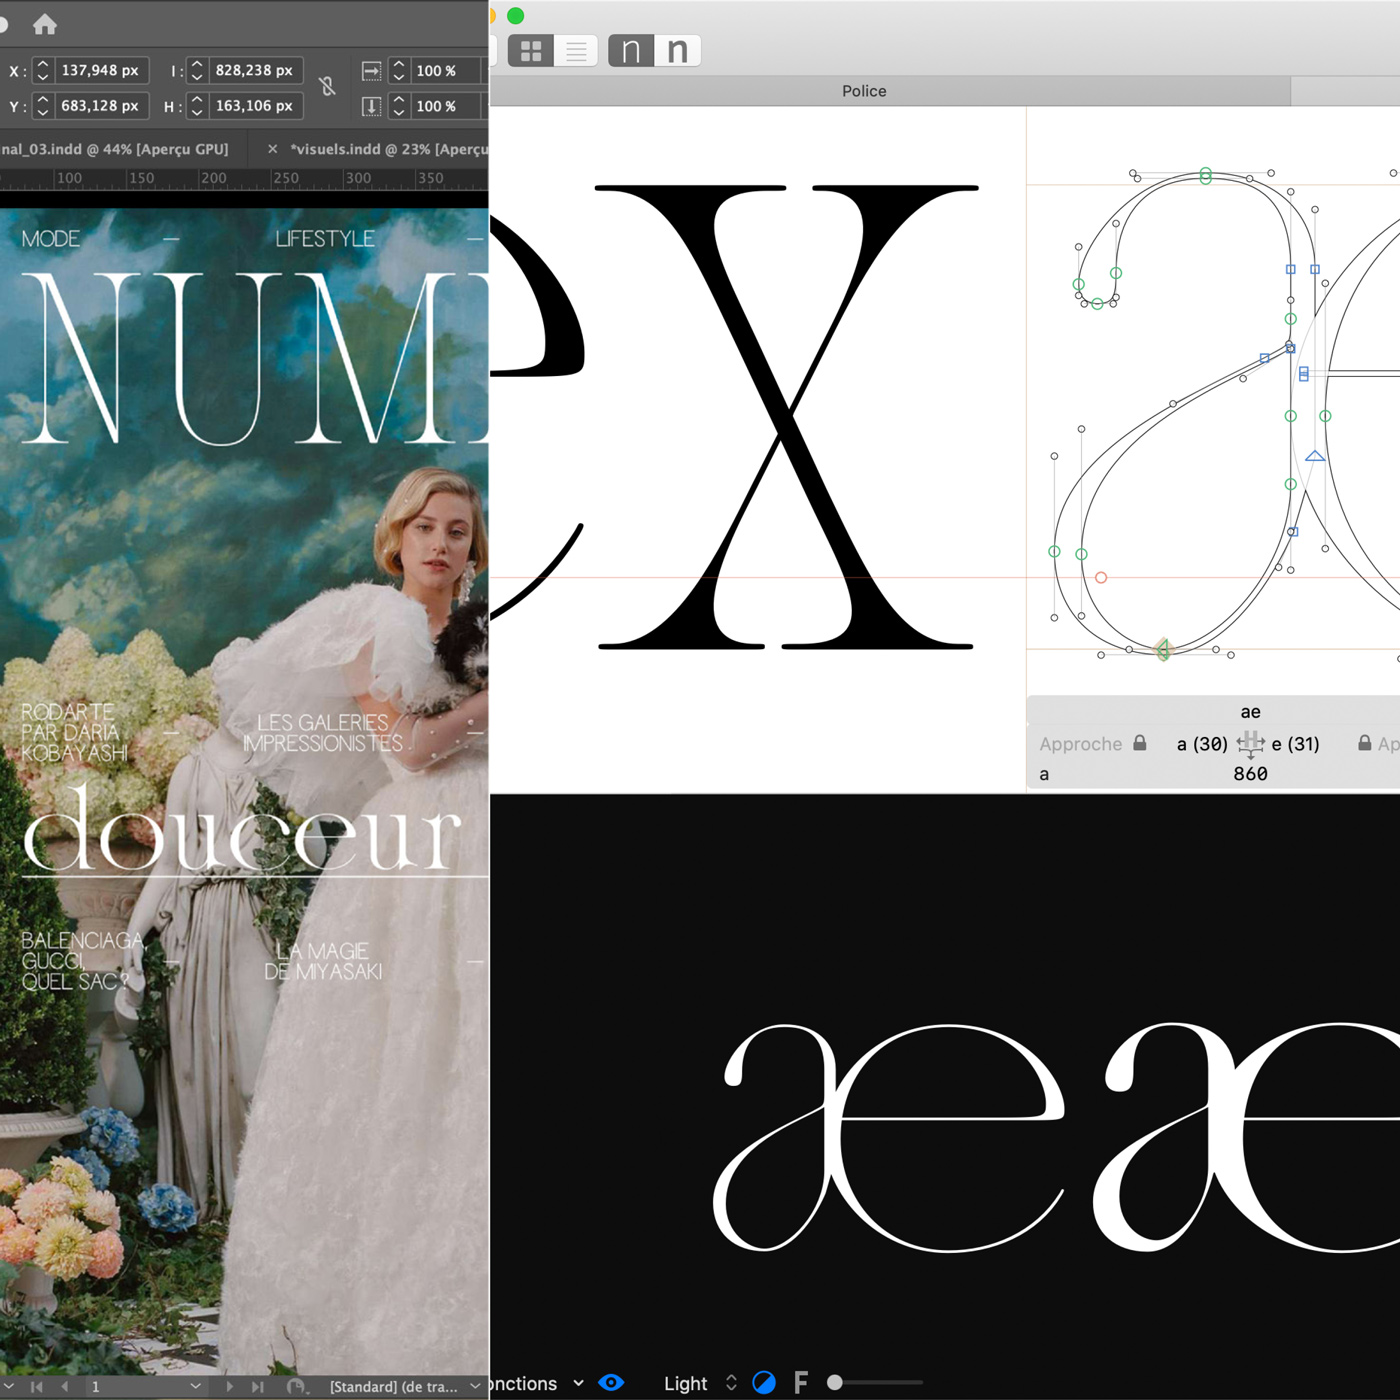 04 collide24 Lou Rainaldo Anne Dauphine Borione - The typeface 'Aliénor' by Anne-Dauphine Borione and Lou Rainaldo is a mixture of elegance and extravagance